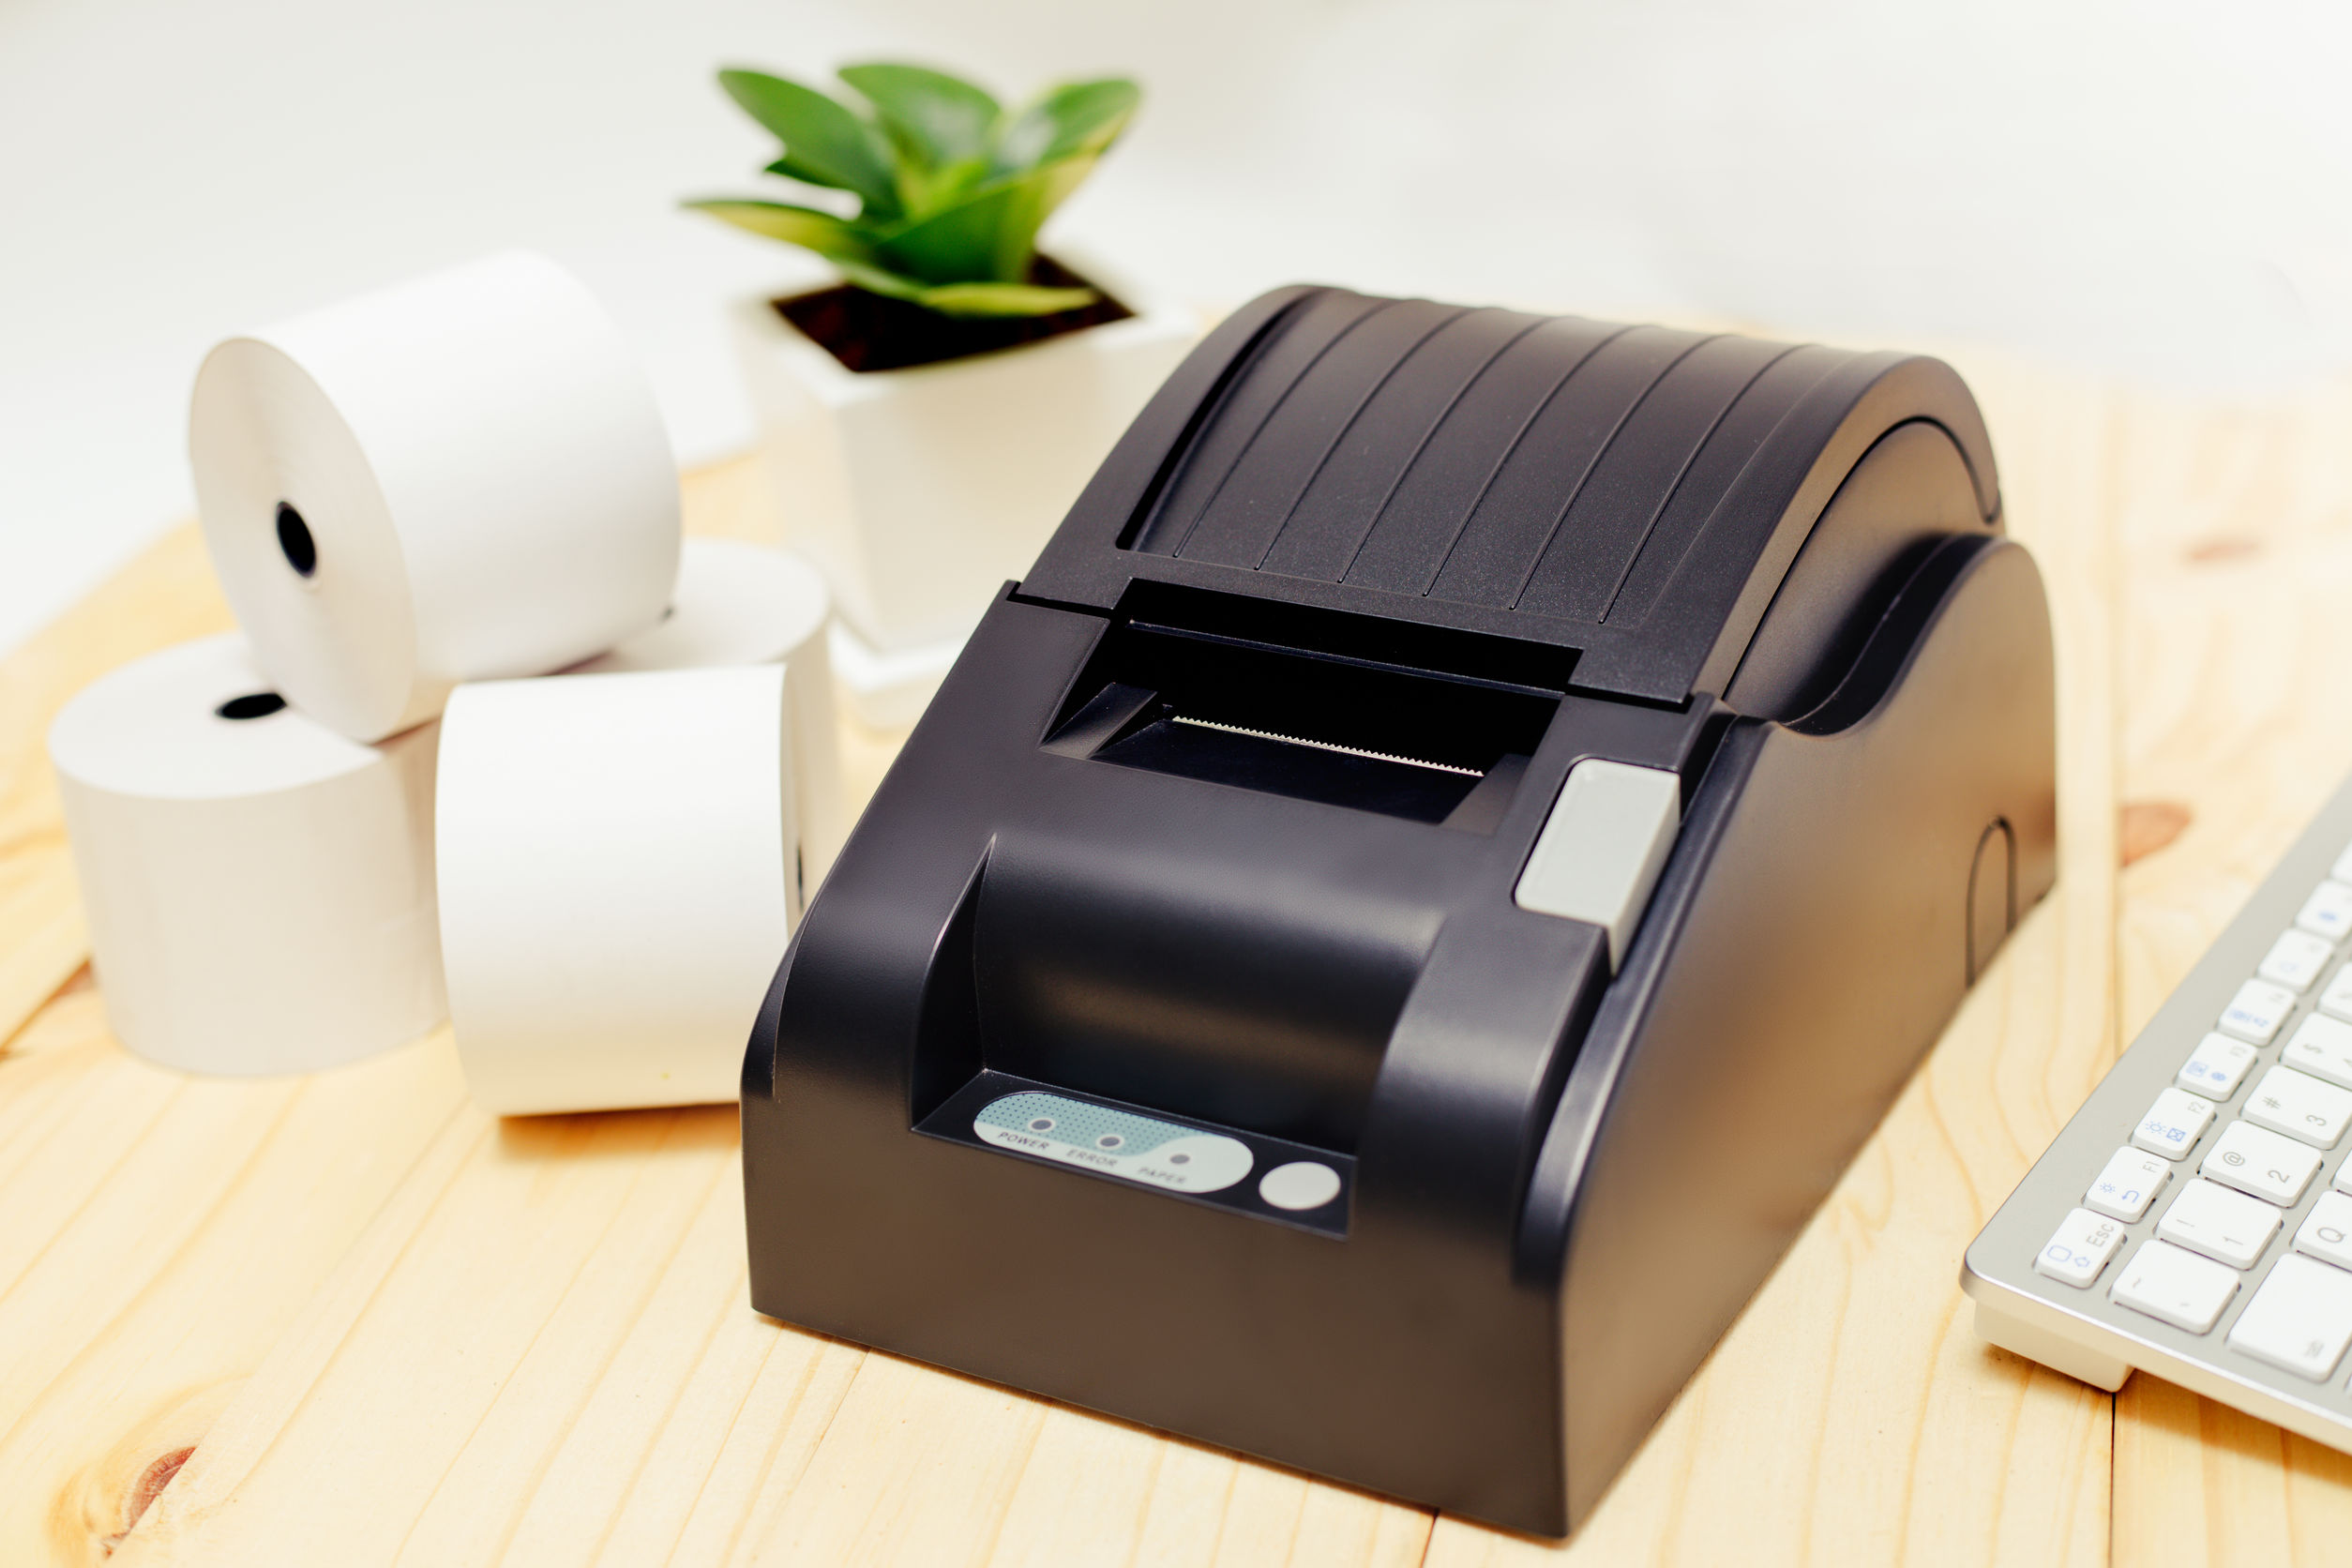 Office equipment, receipt printing